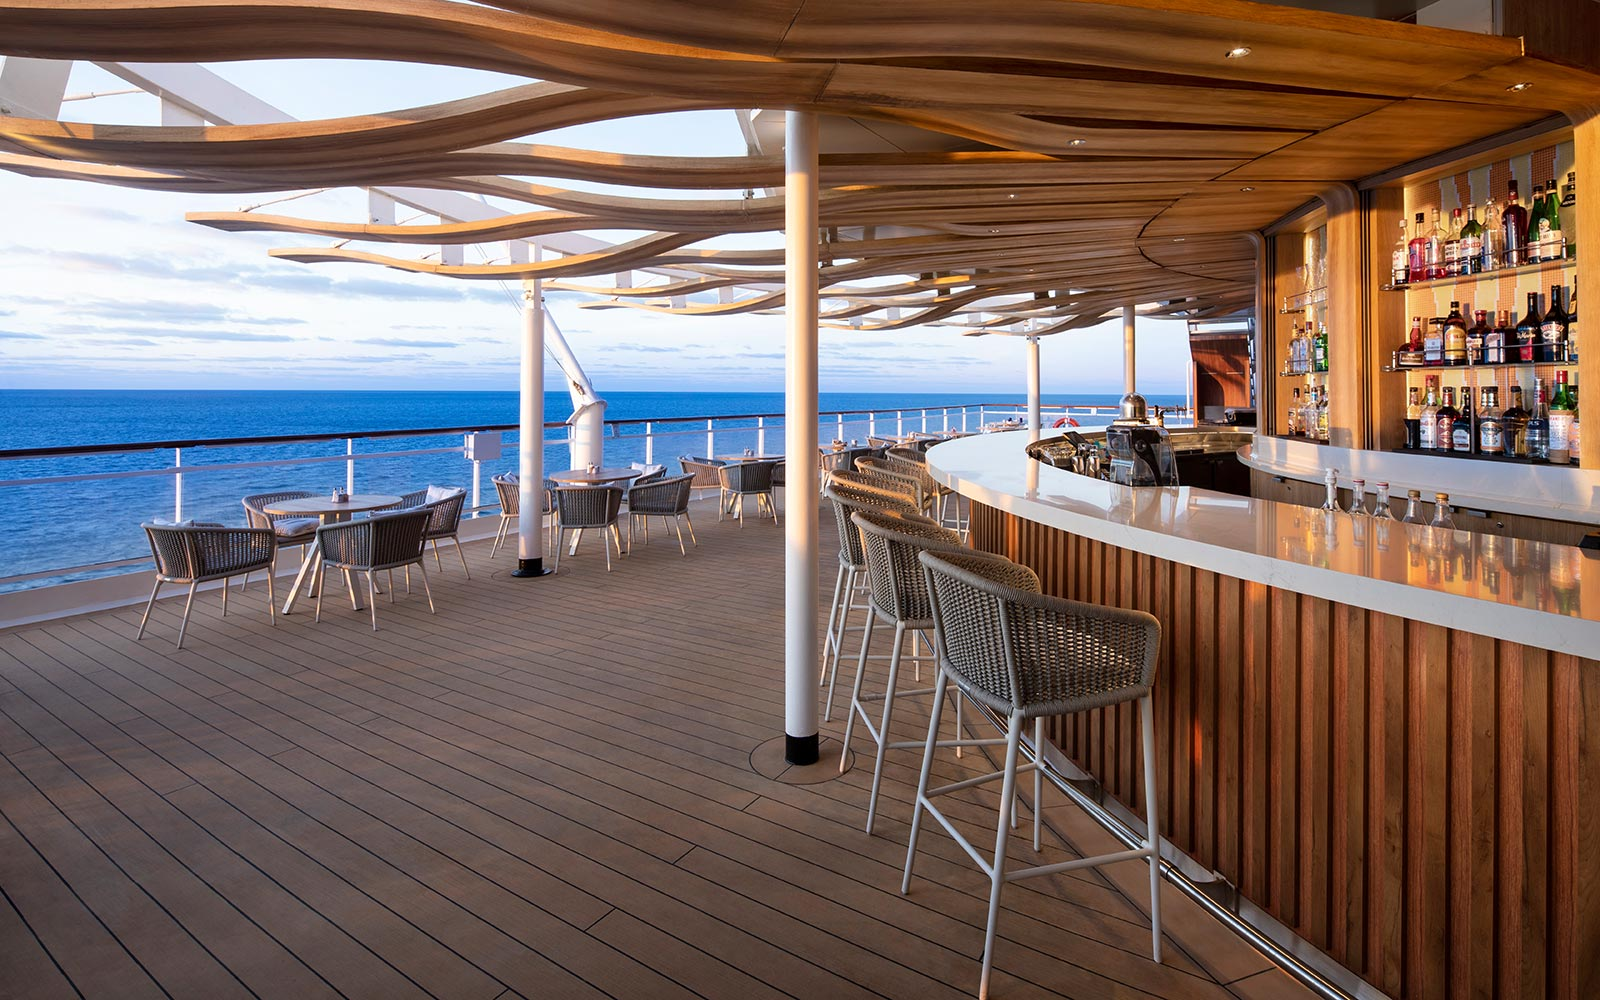 Celebrity Cruises Is Giving Its Entire Fleet a $500-million Upgrade — See Inside One of Its Newly Renovated Ships